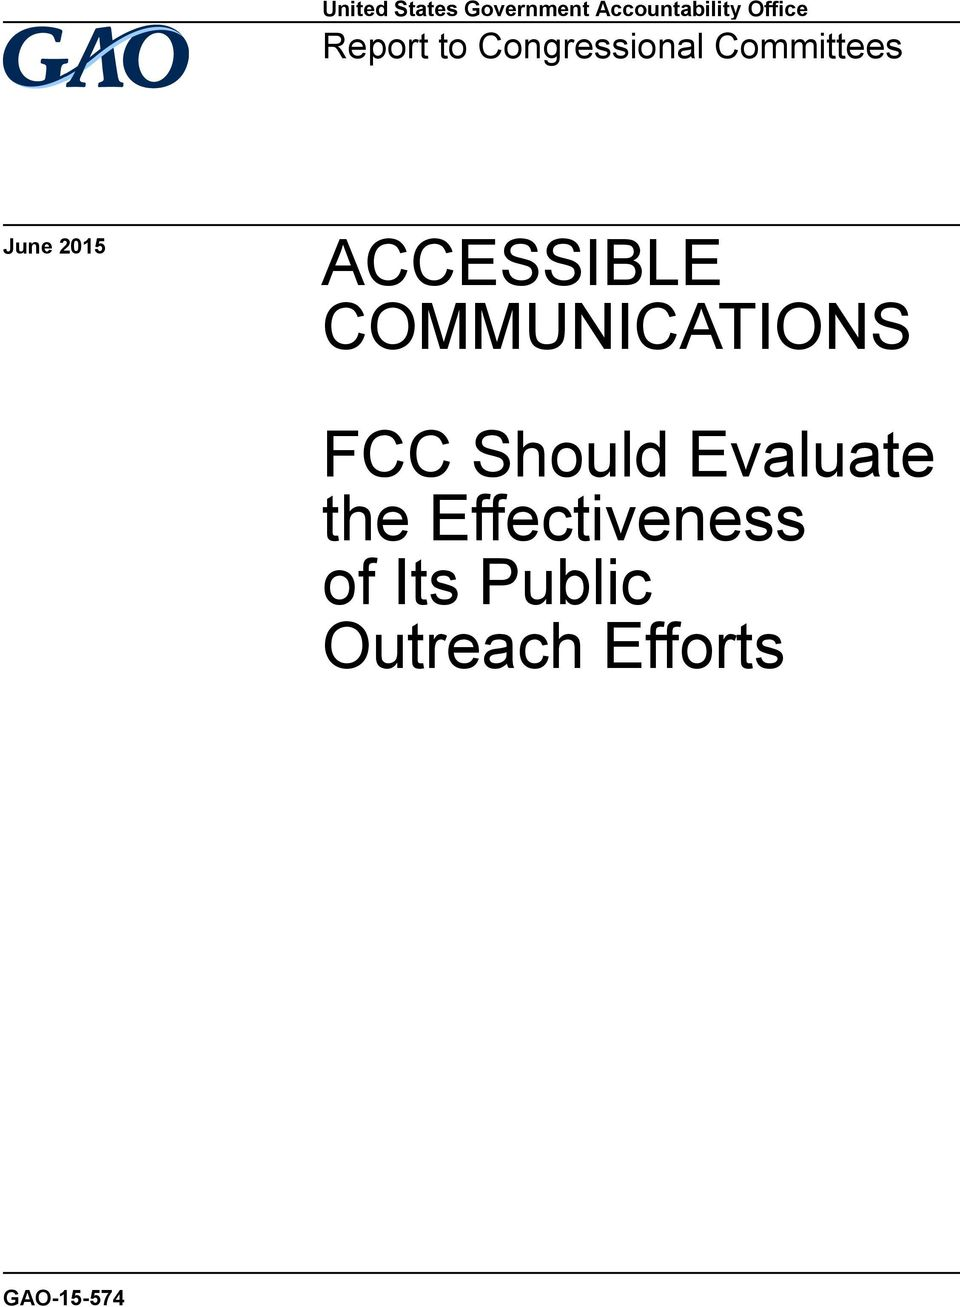 ACCESSIBLE COMMUNICATIONS FCC Should Evaluate the